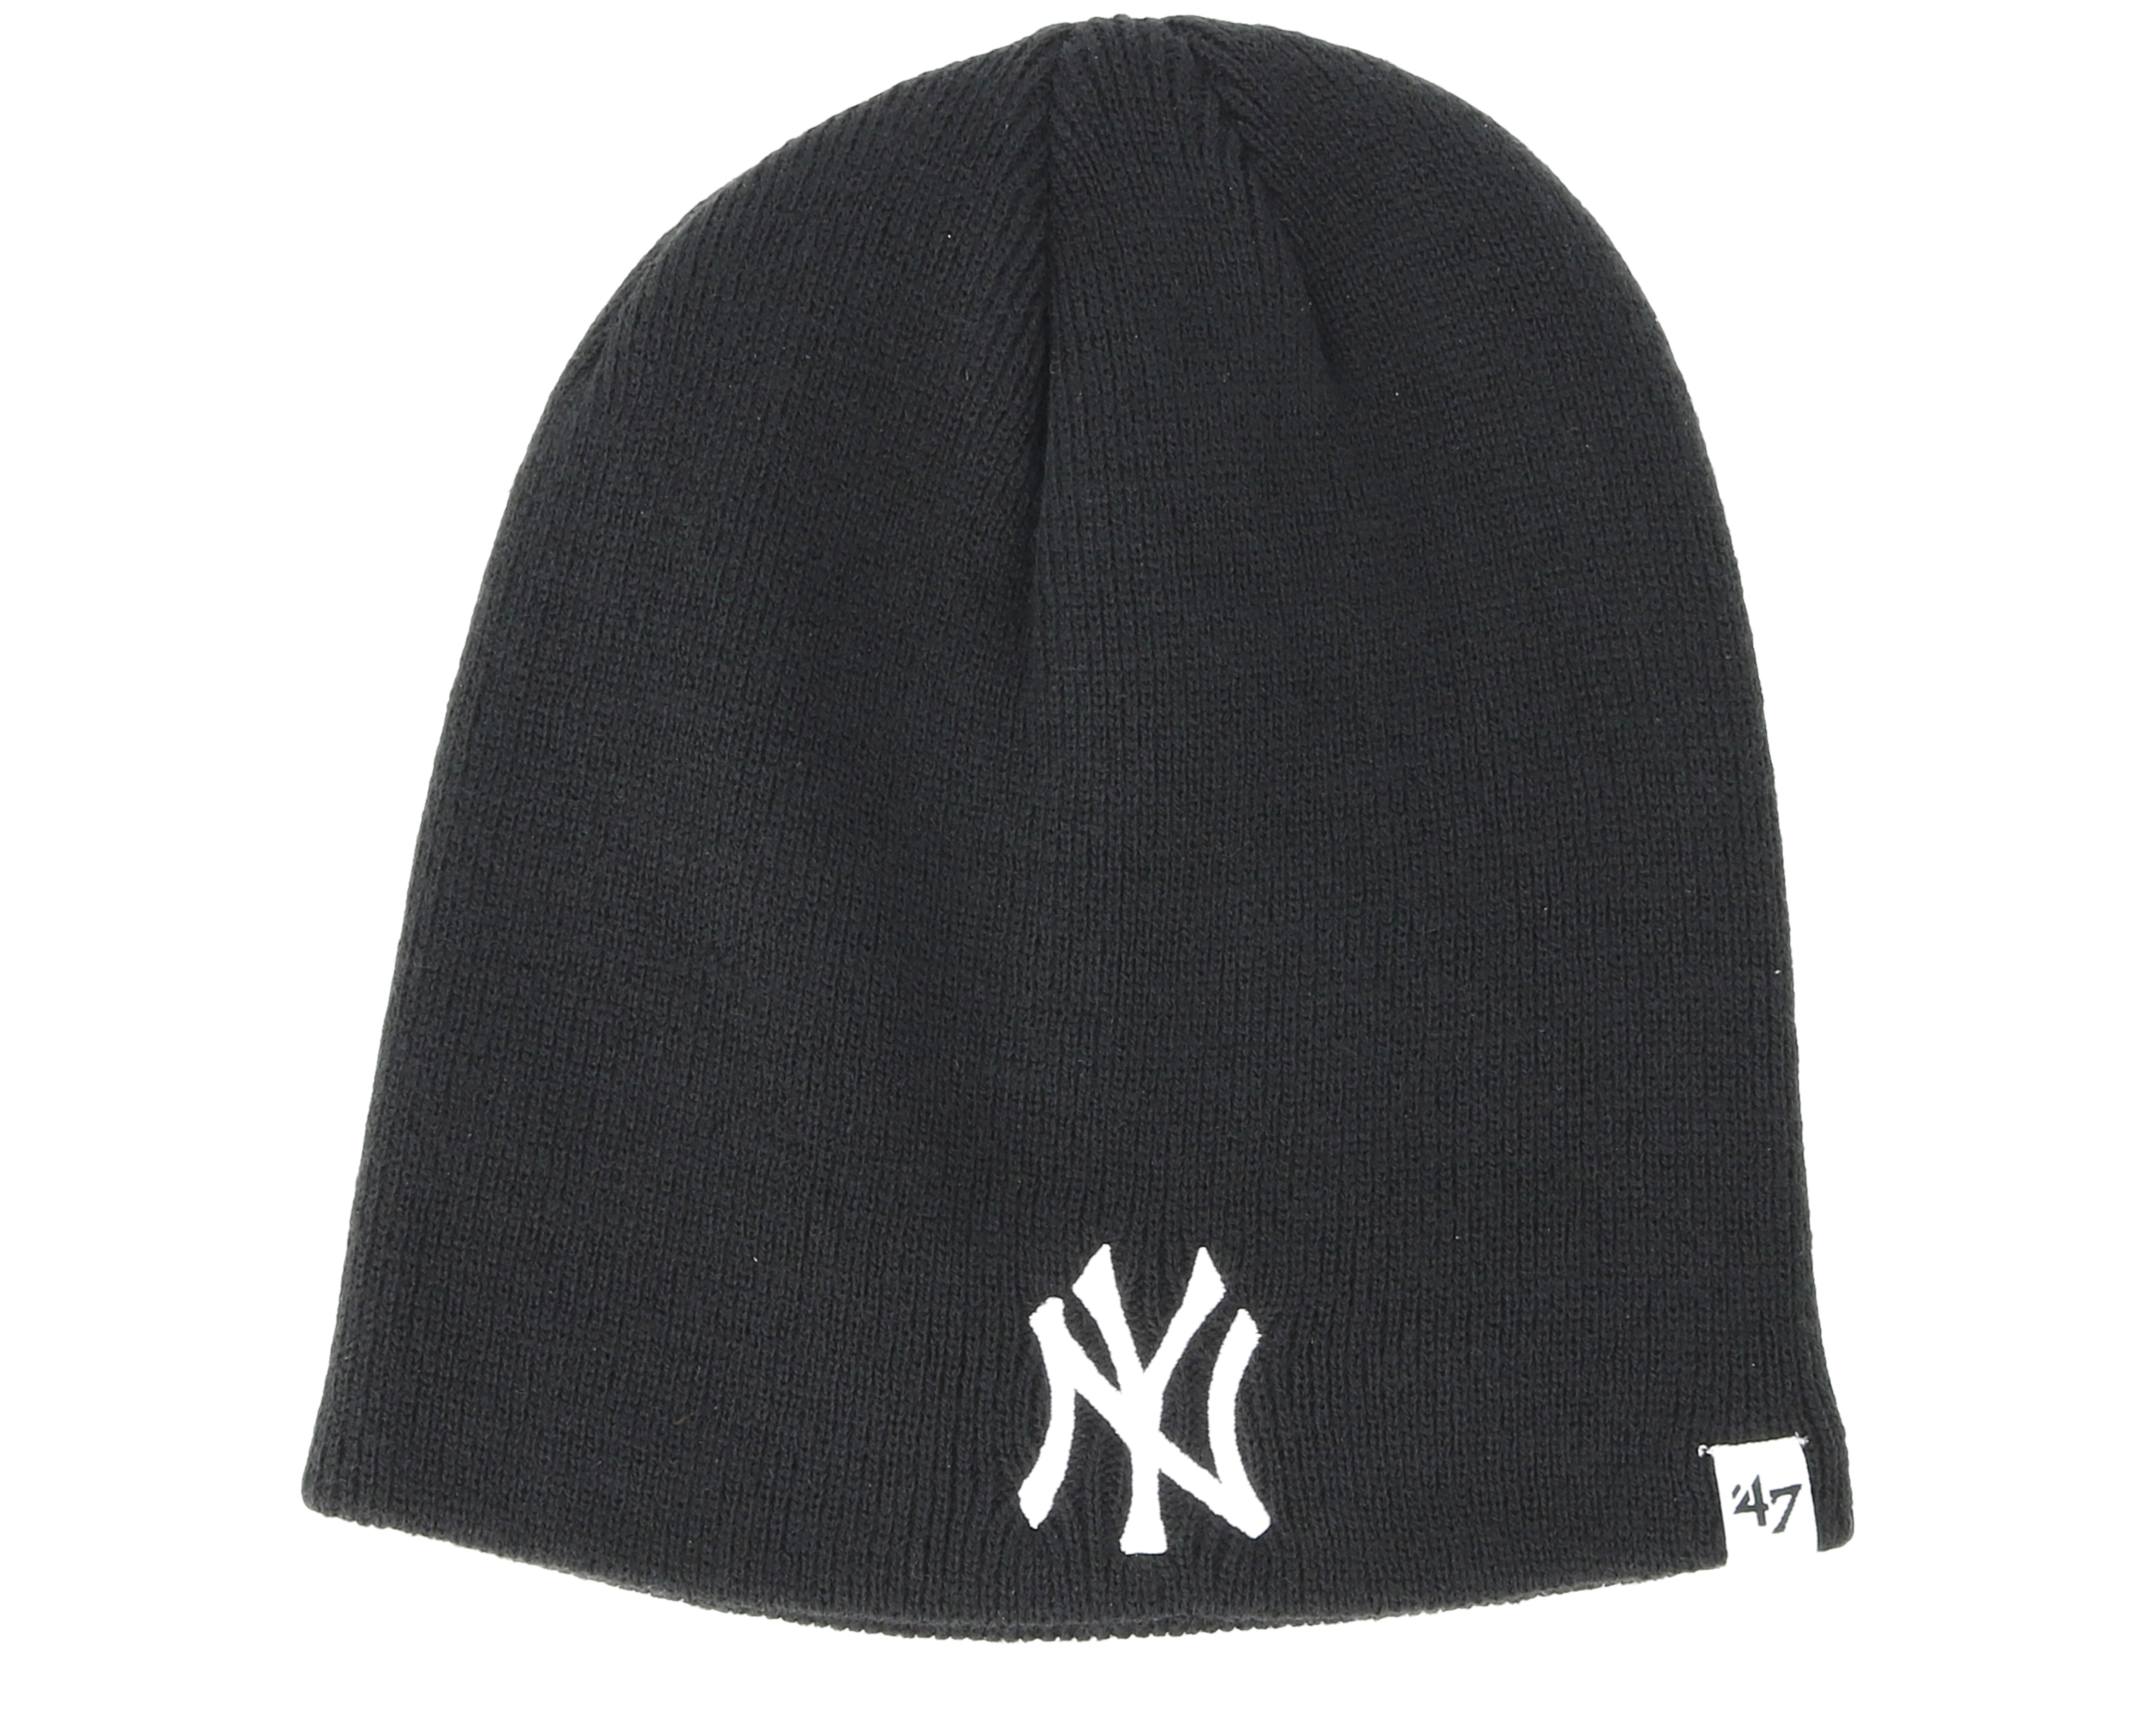 Zaha Hadid Unveils First Building In New York City 2013 7 moreover 3024891 moreover 132434045265598290 likewise New York Yankees Black Beanie 47 Brand also New Era Kids Ny Yankees Basic Black 940 Adjustable 2. on oscar ny new york state